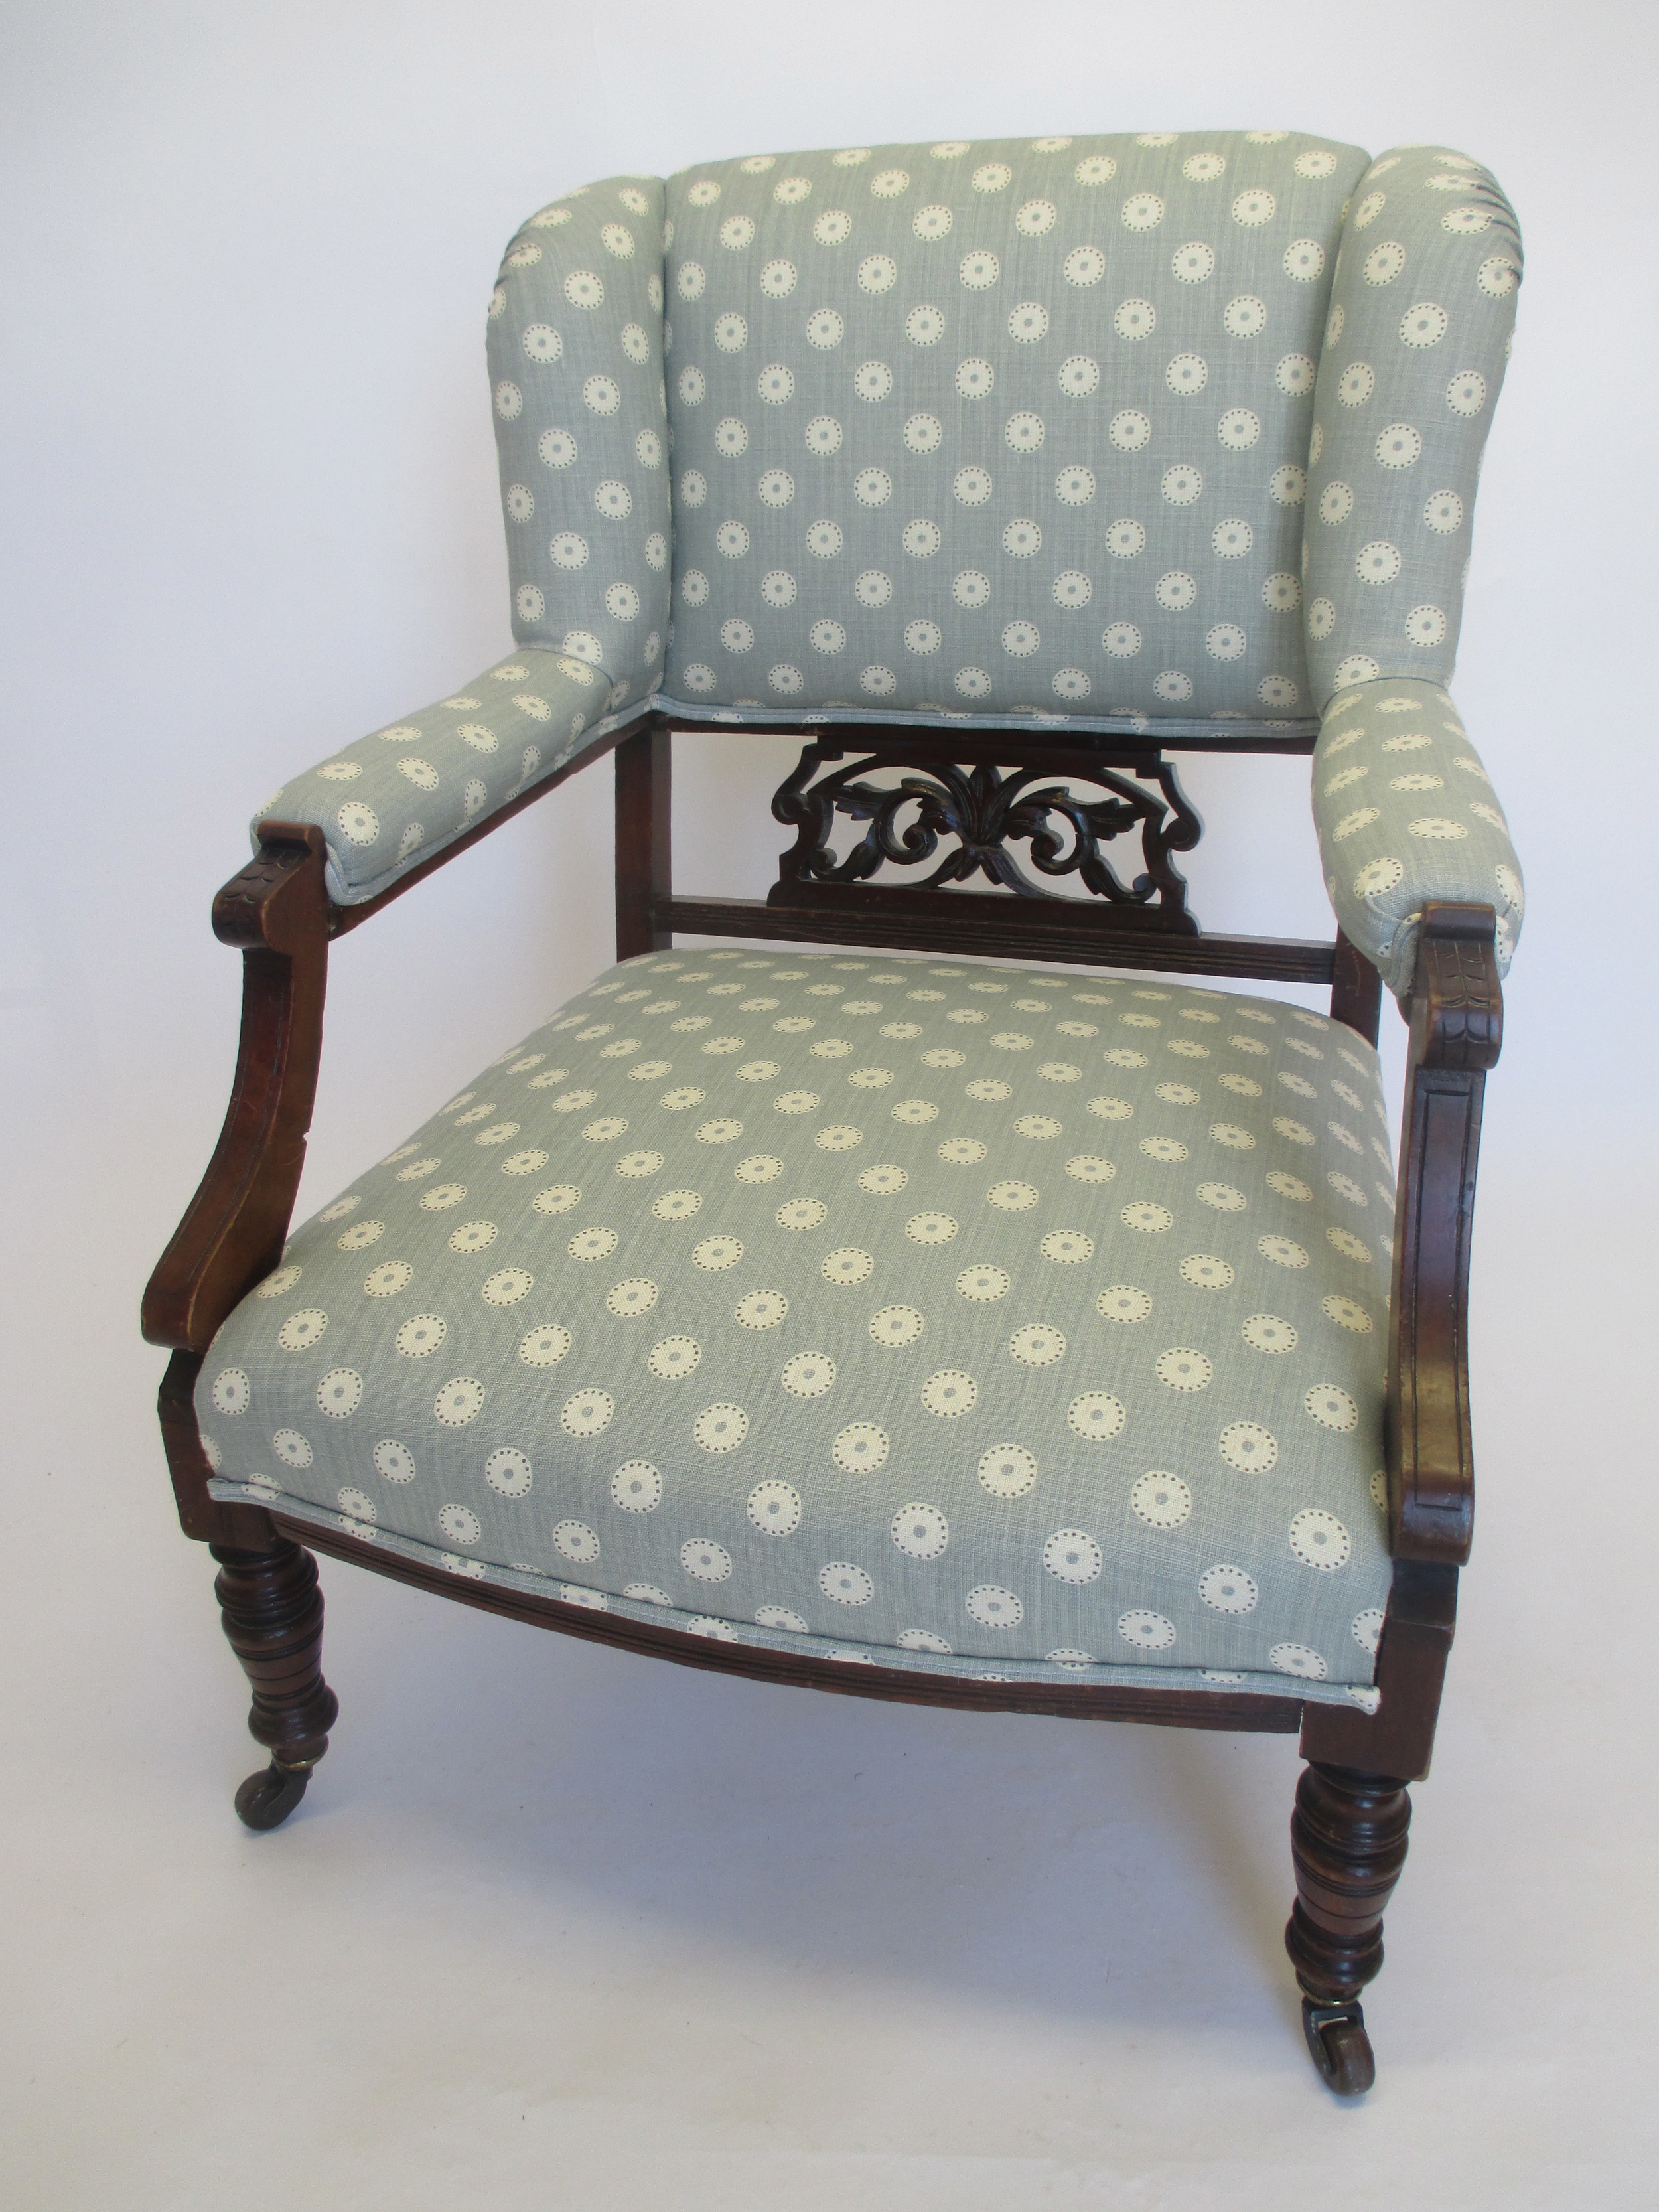 This chair is covered in 'Pretty Maids' by Vanessa Arbuthnott. The fabric is light and fresh and lifts the chair letting the detailing in the wood stand out.